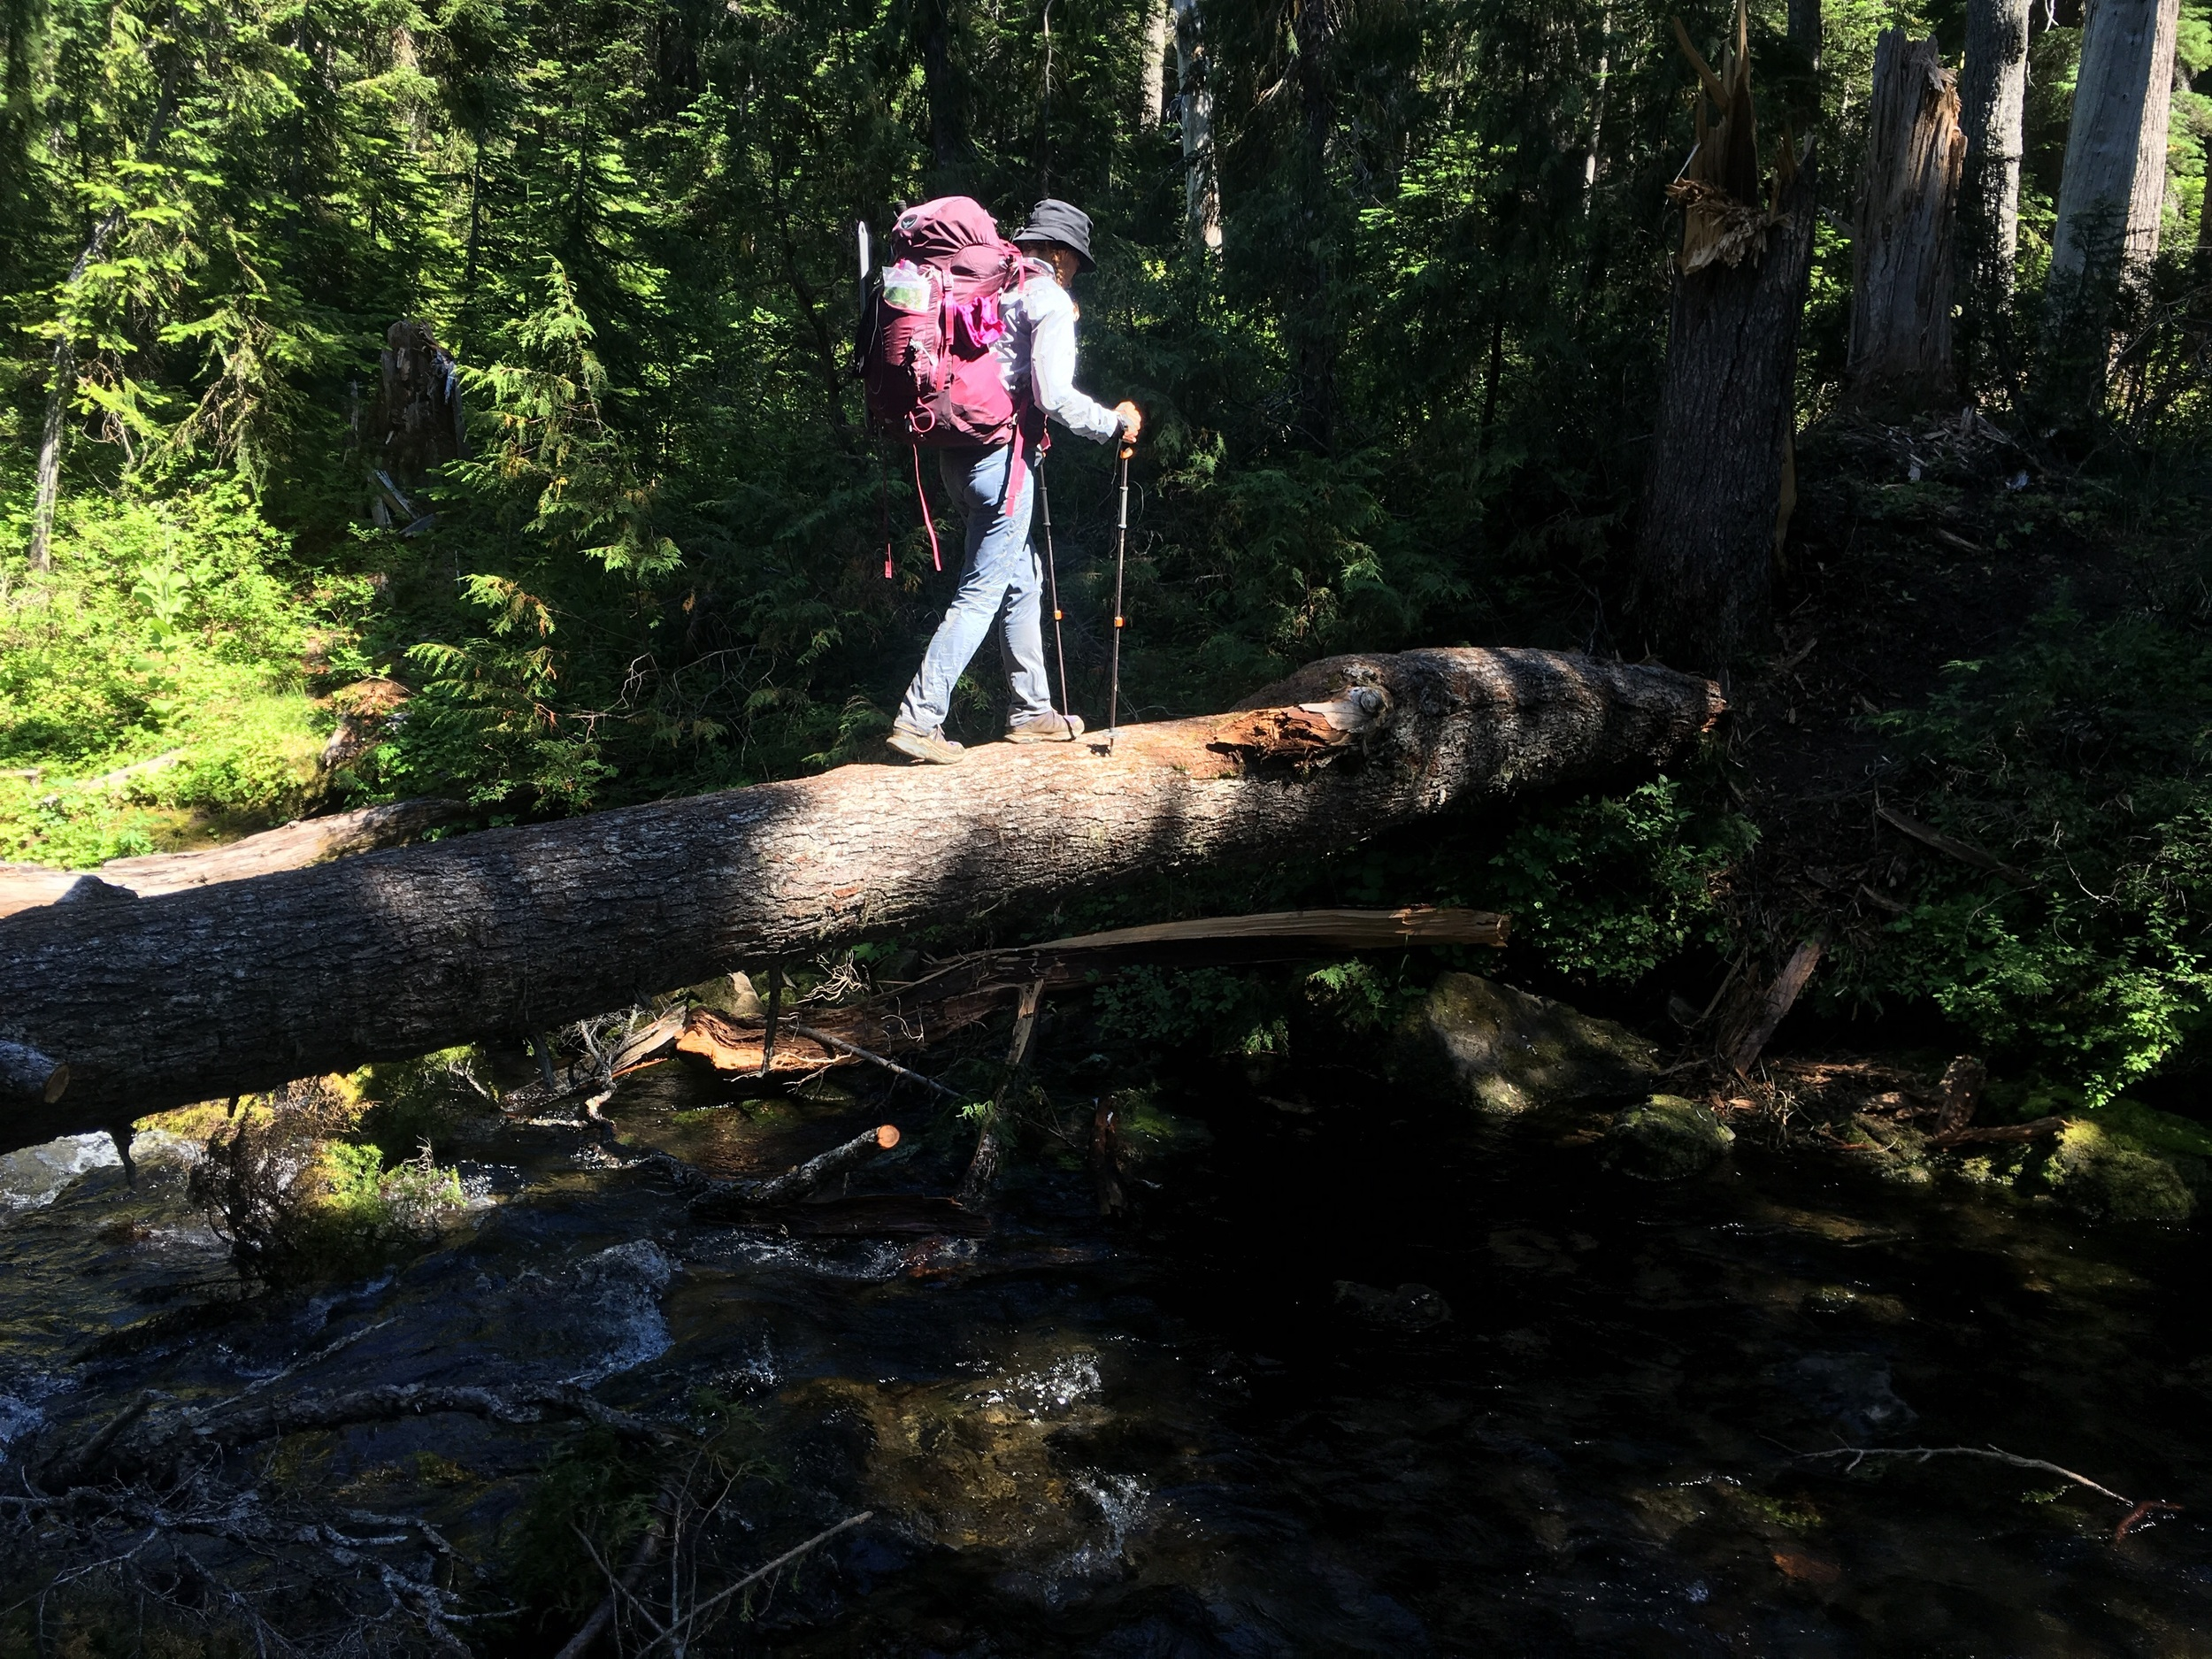 Huckleberry crossing the log to avoid the ford of Bumping Creek